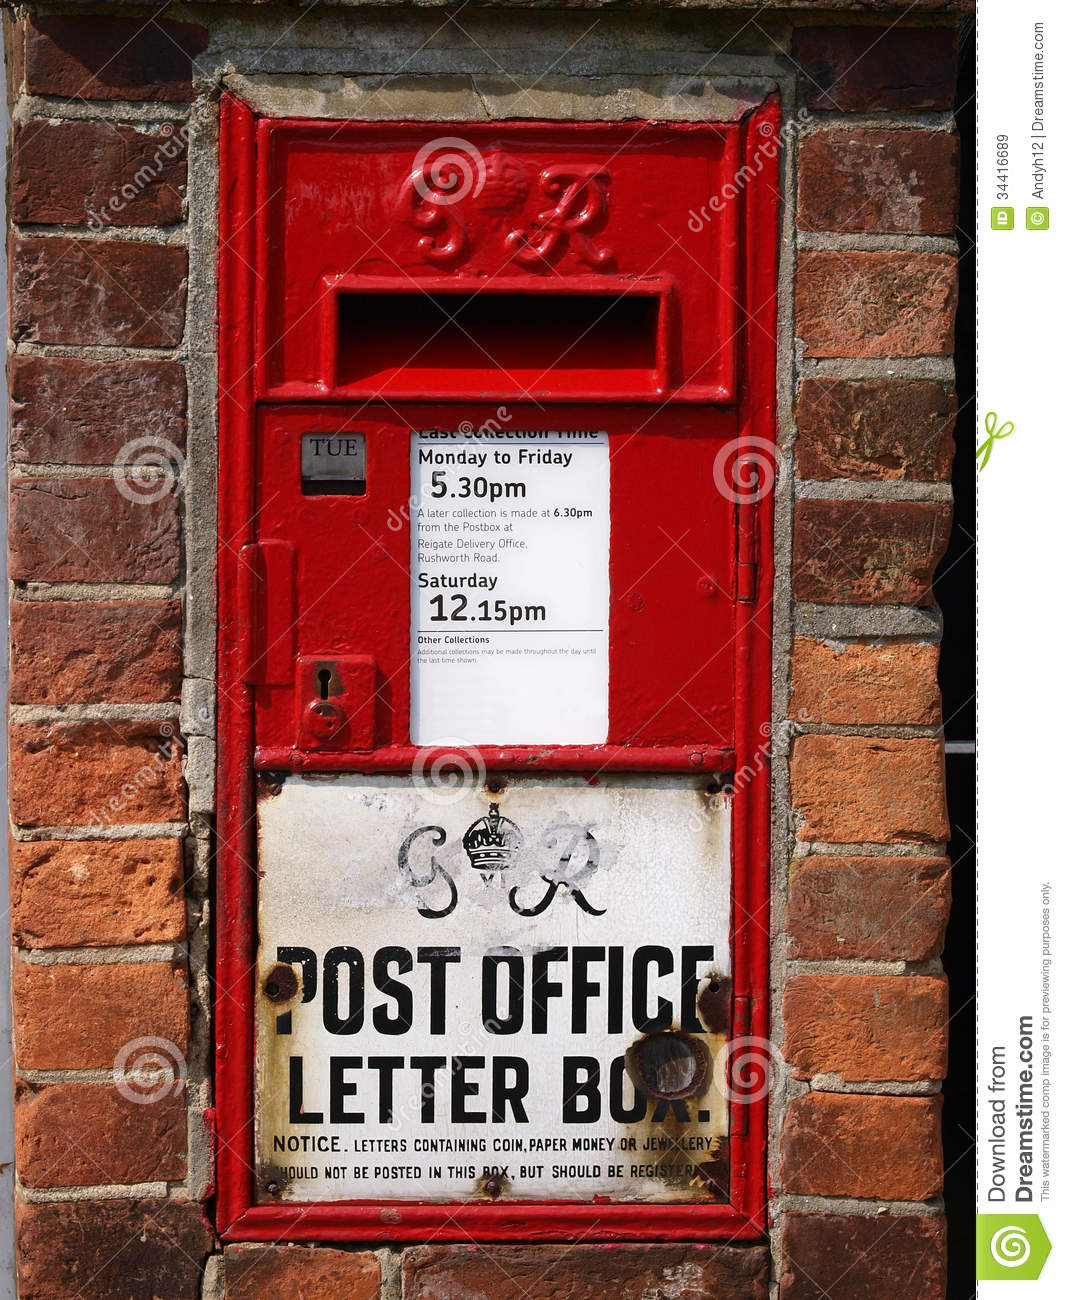 Old Post Box Stock Image. Image Of Mail, Royal, Letter